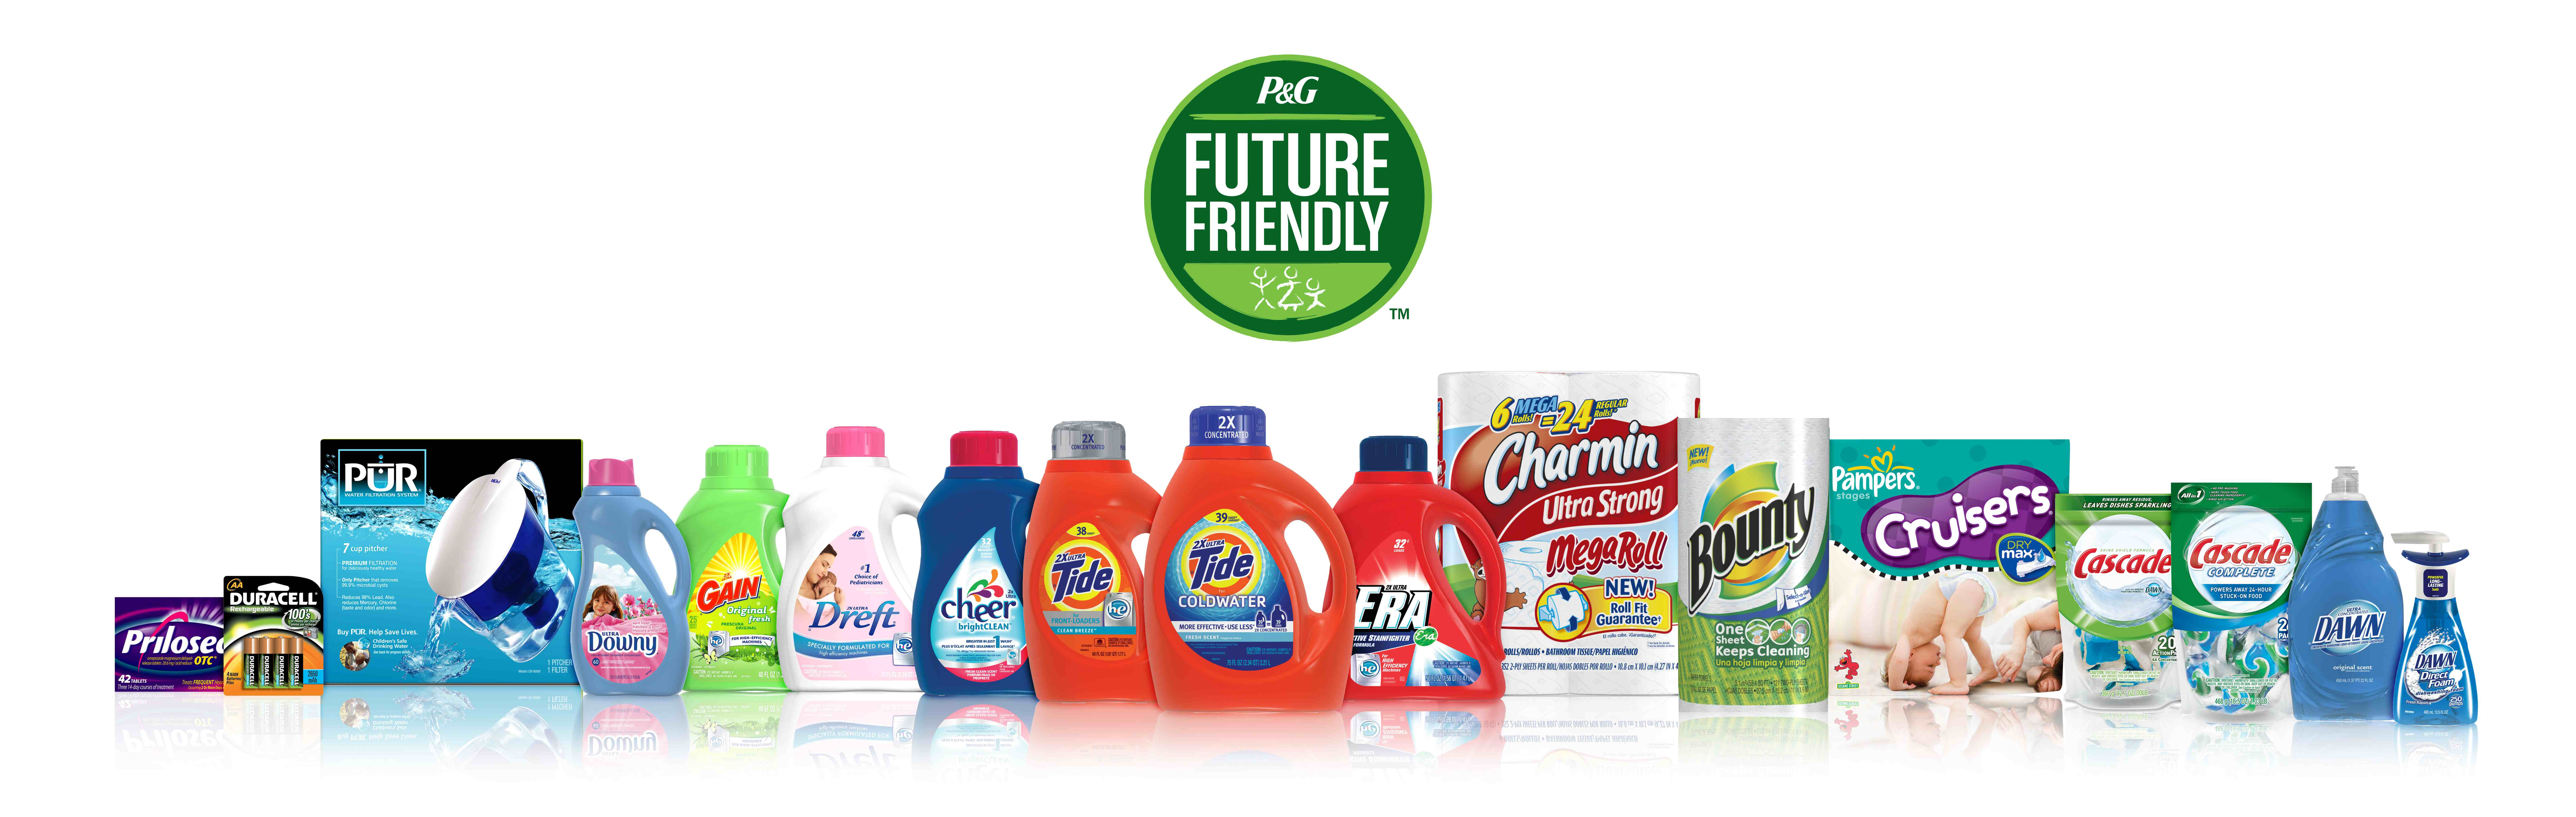 P&g Product Lineup